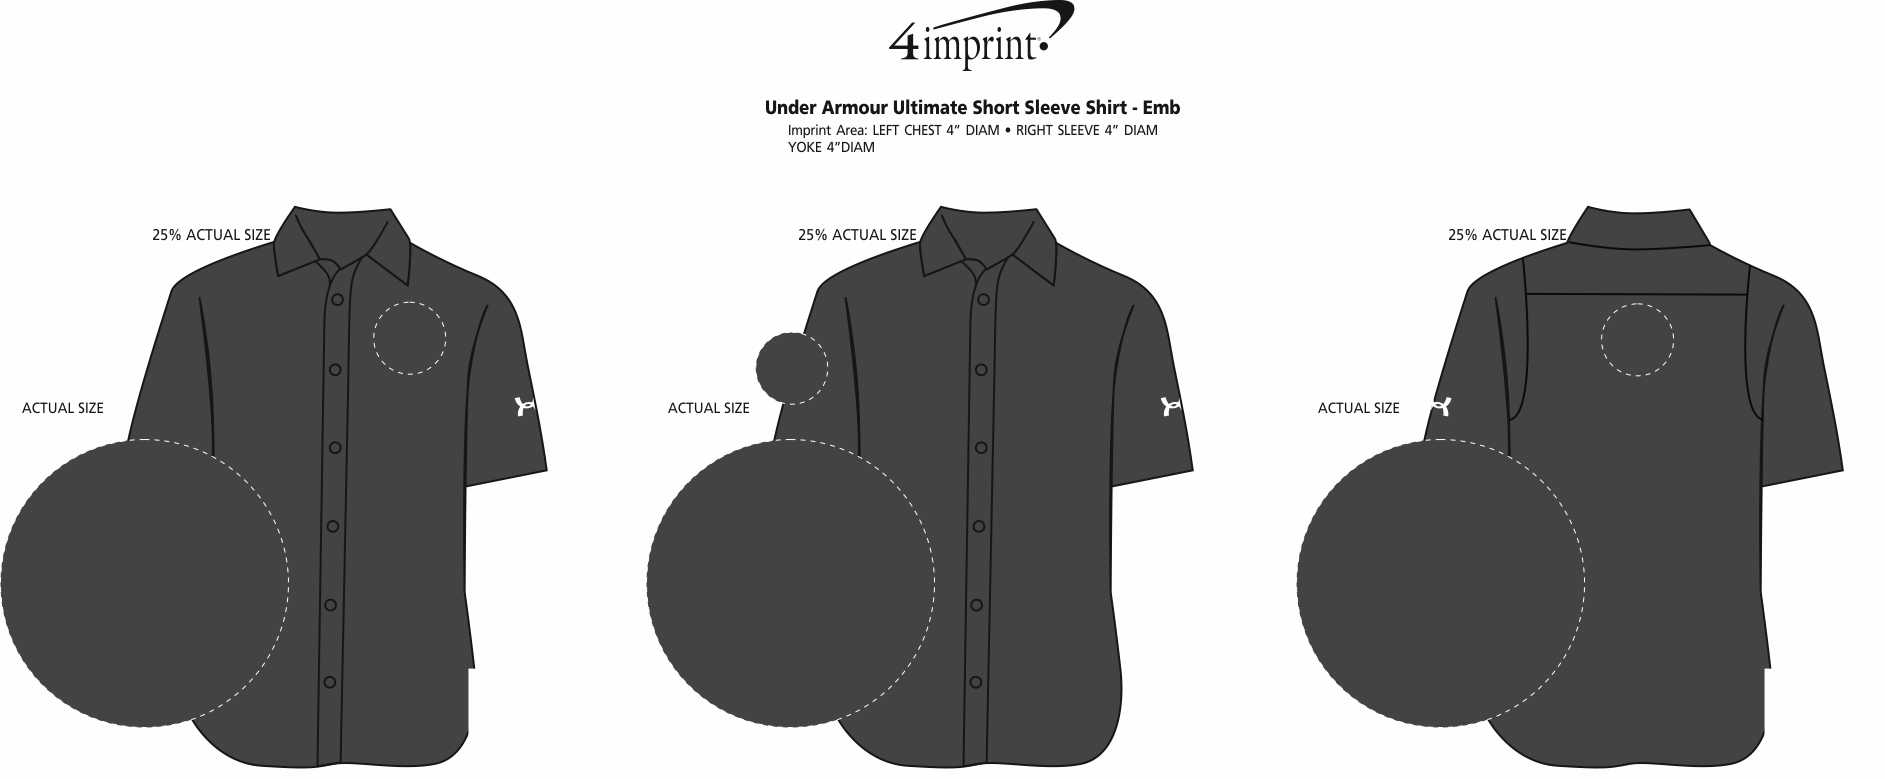 Imprint Area of Under Armour Ultimate Short Sleeve Shirt - Embroidered